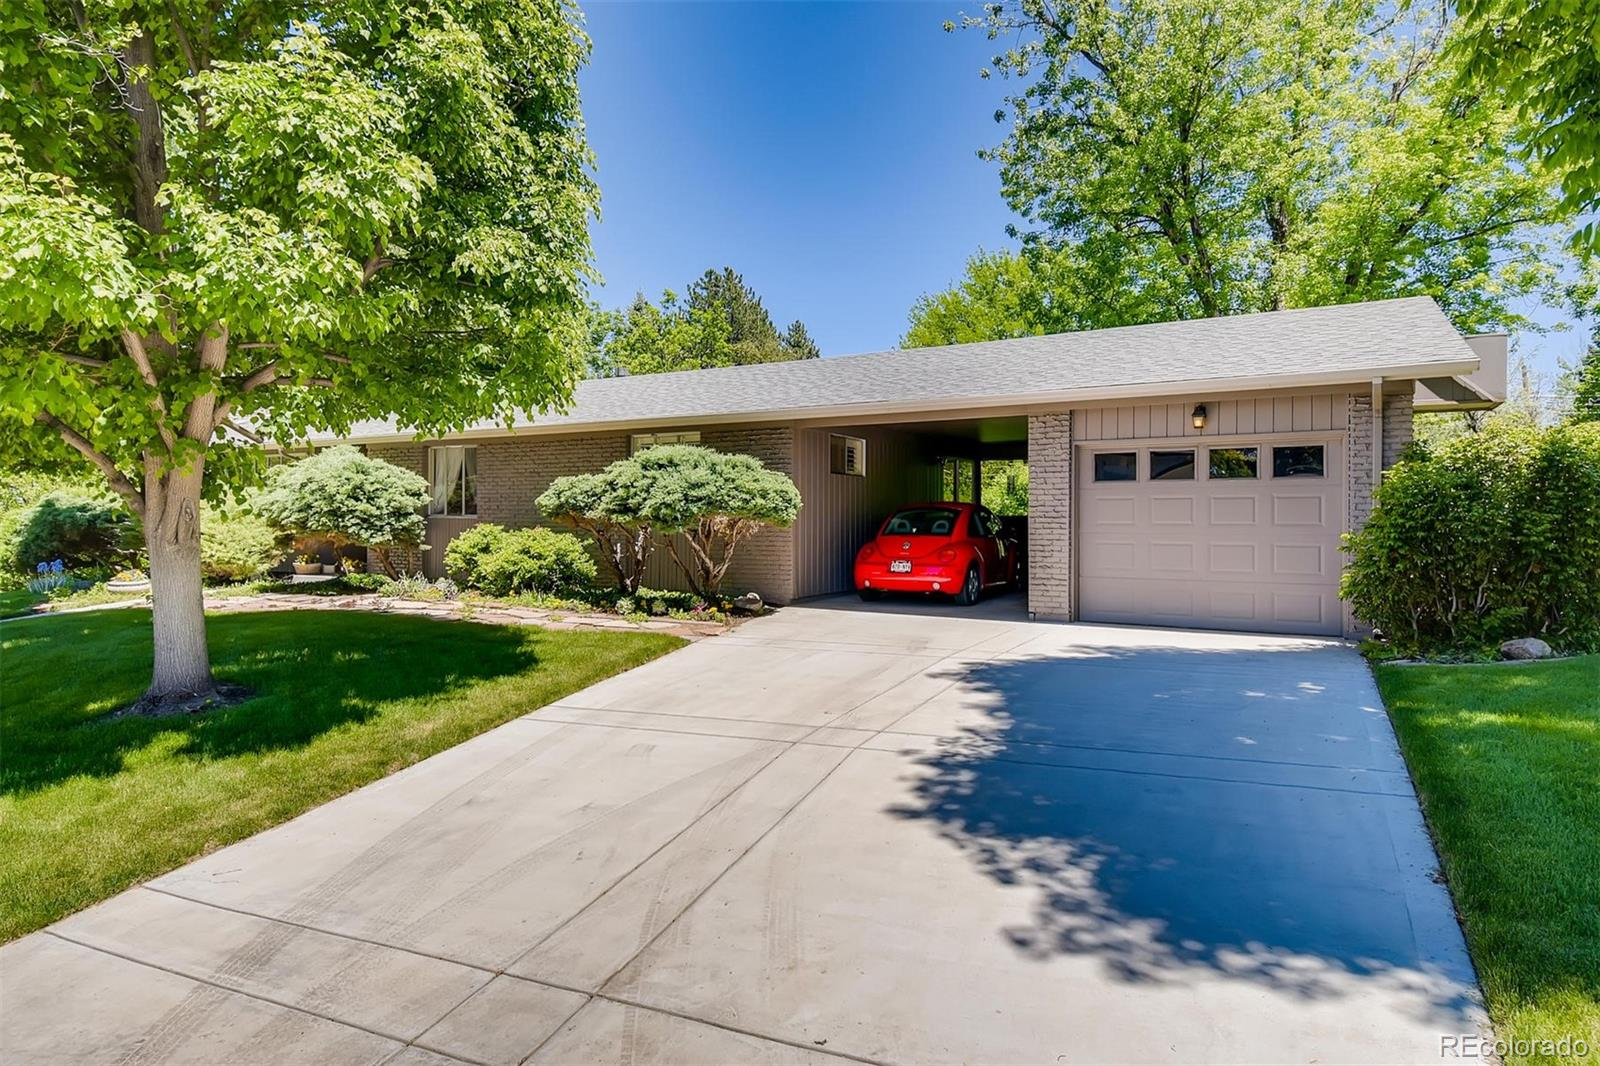 6092 S Cherrywood Circle Property Photo - Centennial, CO real estate listing